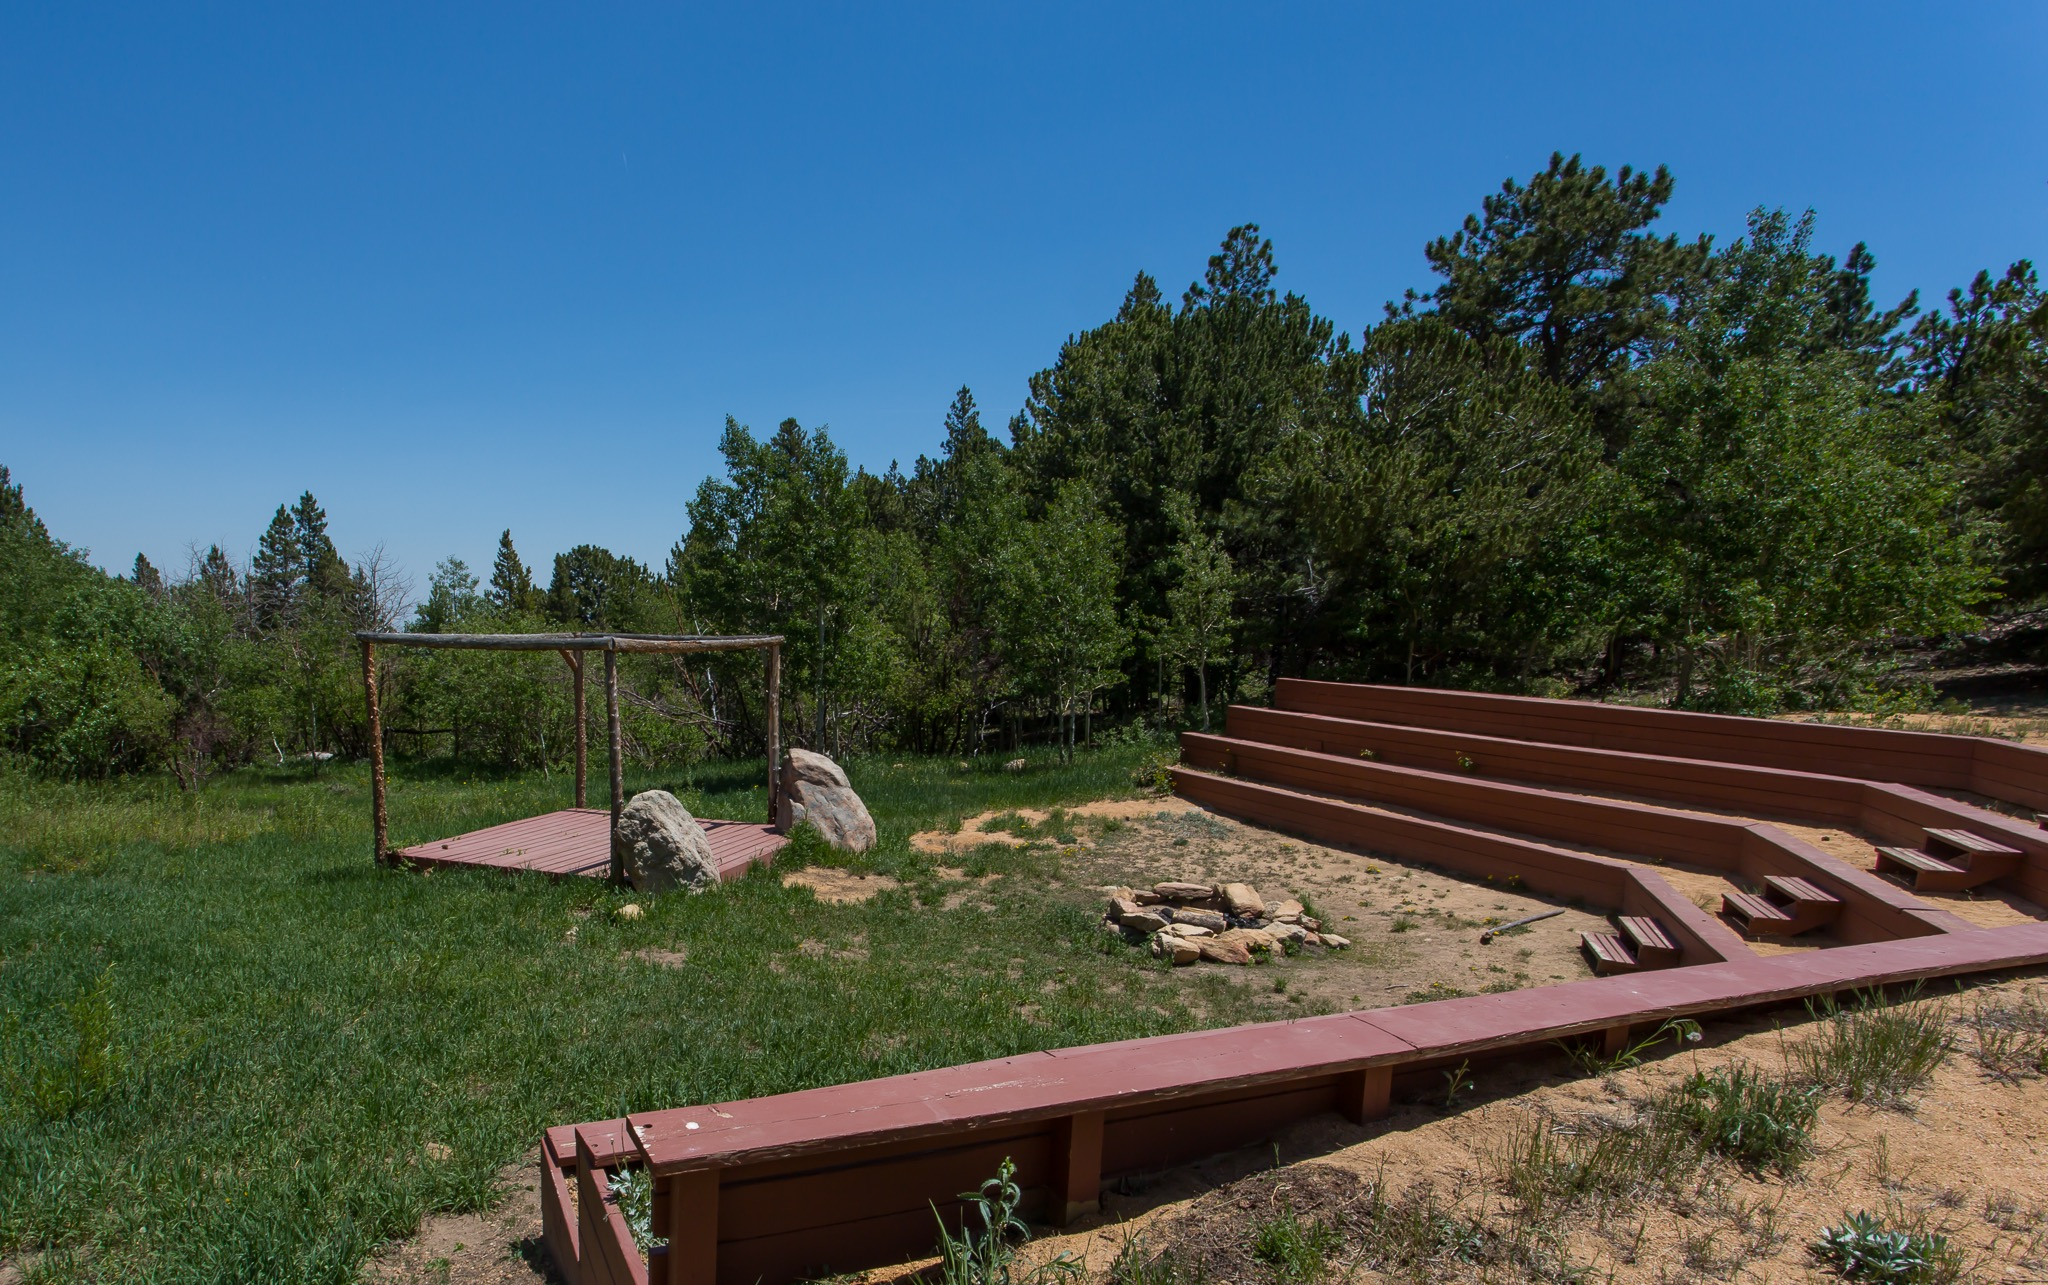 Image of the camp granite lake Amphitheater